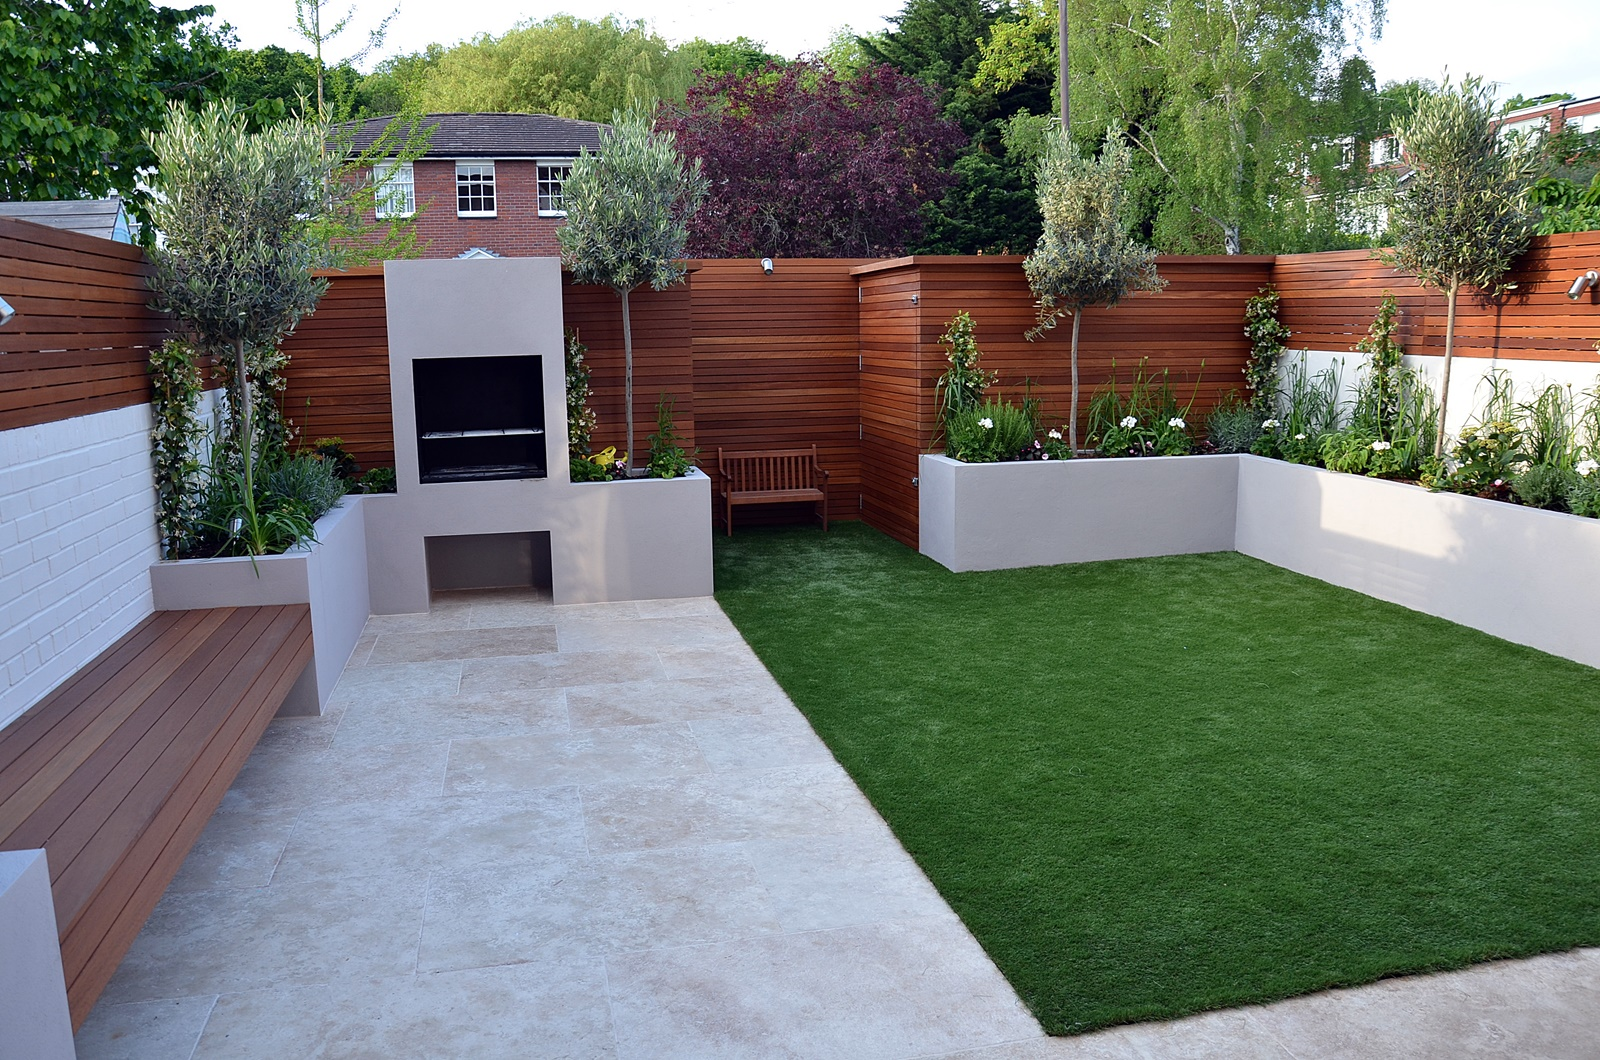 Modern garden design fulham chelsea clapham battersea for Contemporary garden designs and ideas